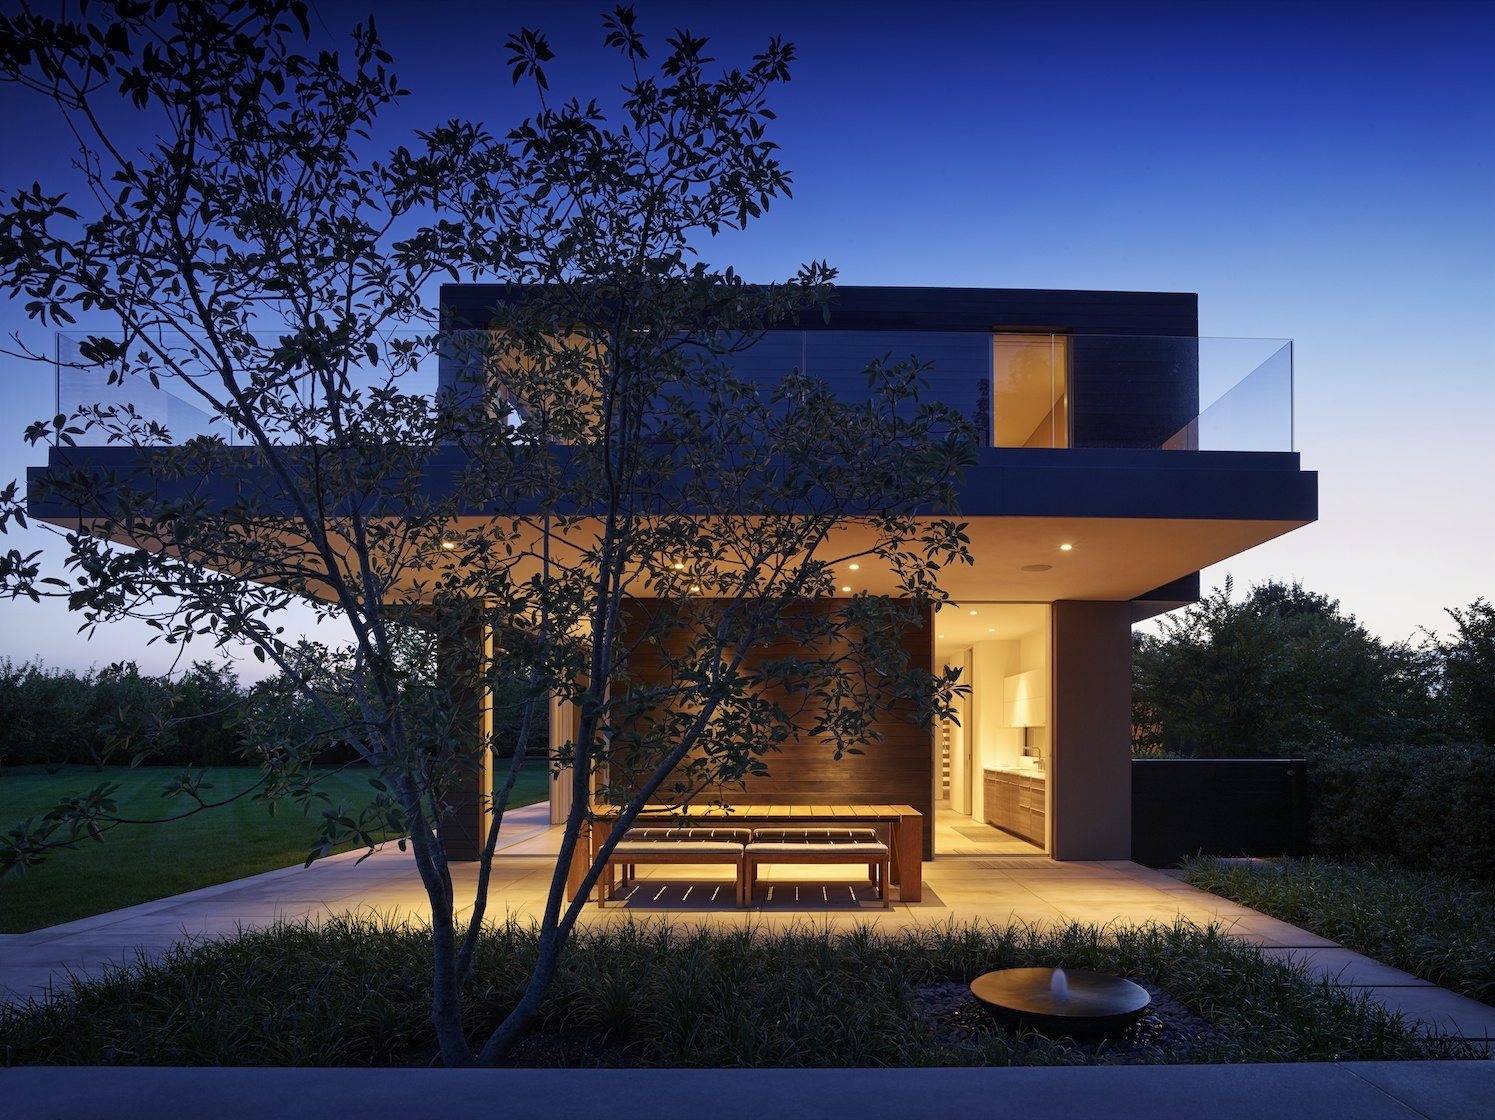 Sagaponack Modern House Outdoor Dining at Dusk